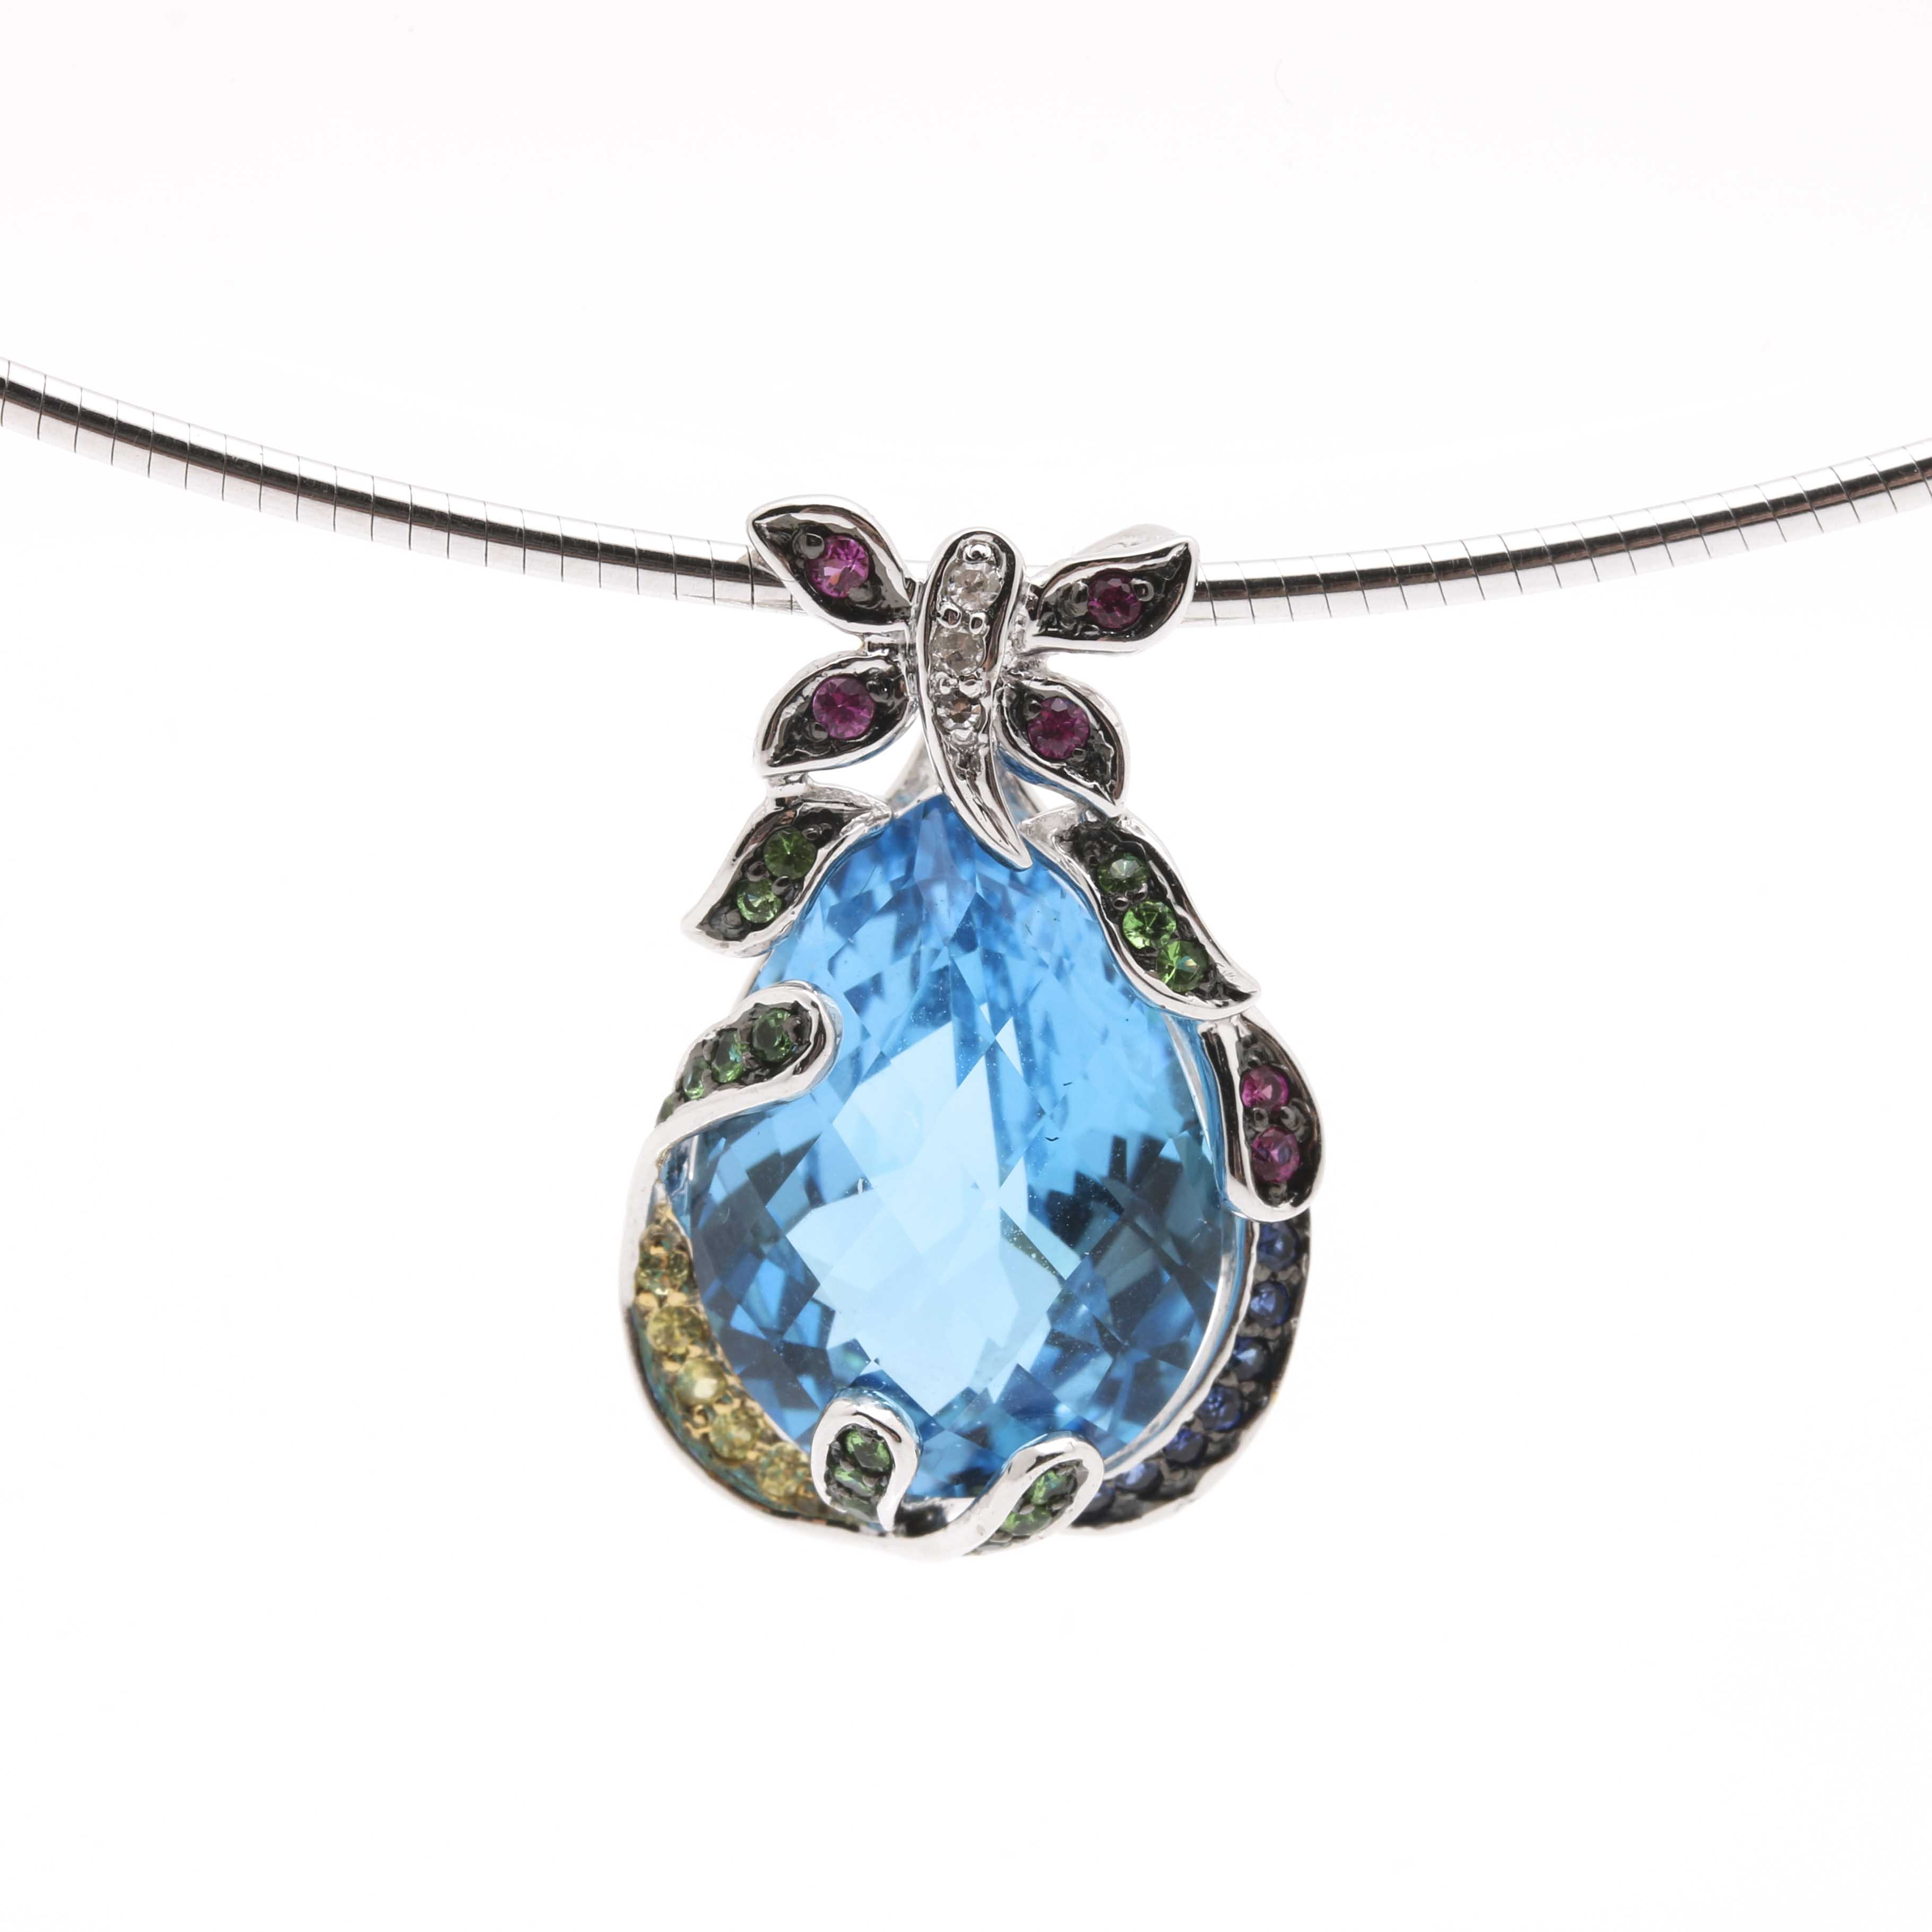 14K White Gold Omega Chain Necklace With Diamond and Gemstone Pendant